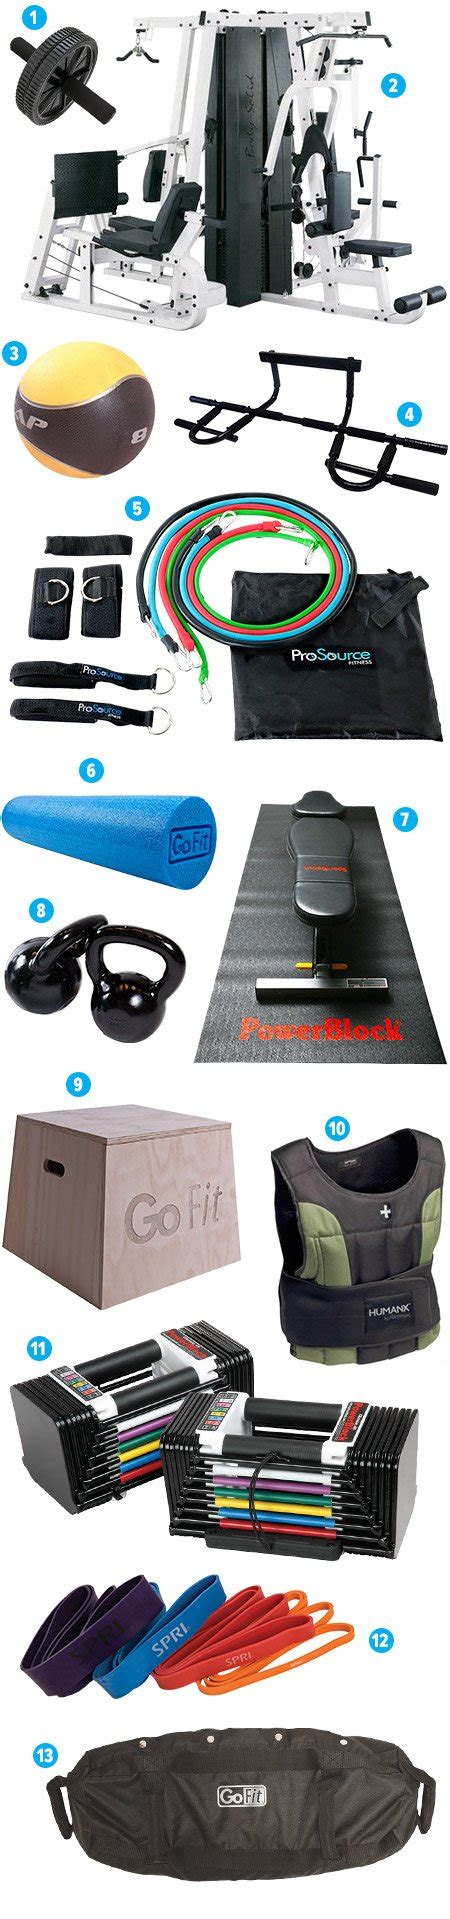 best home exercise equipment 2014 fit gift guide